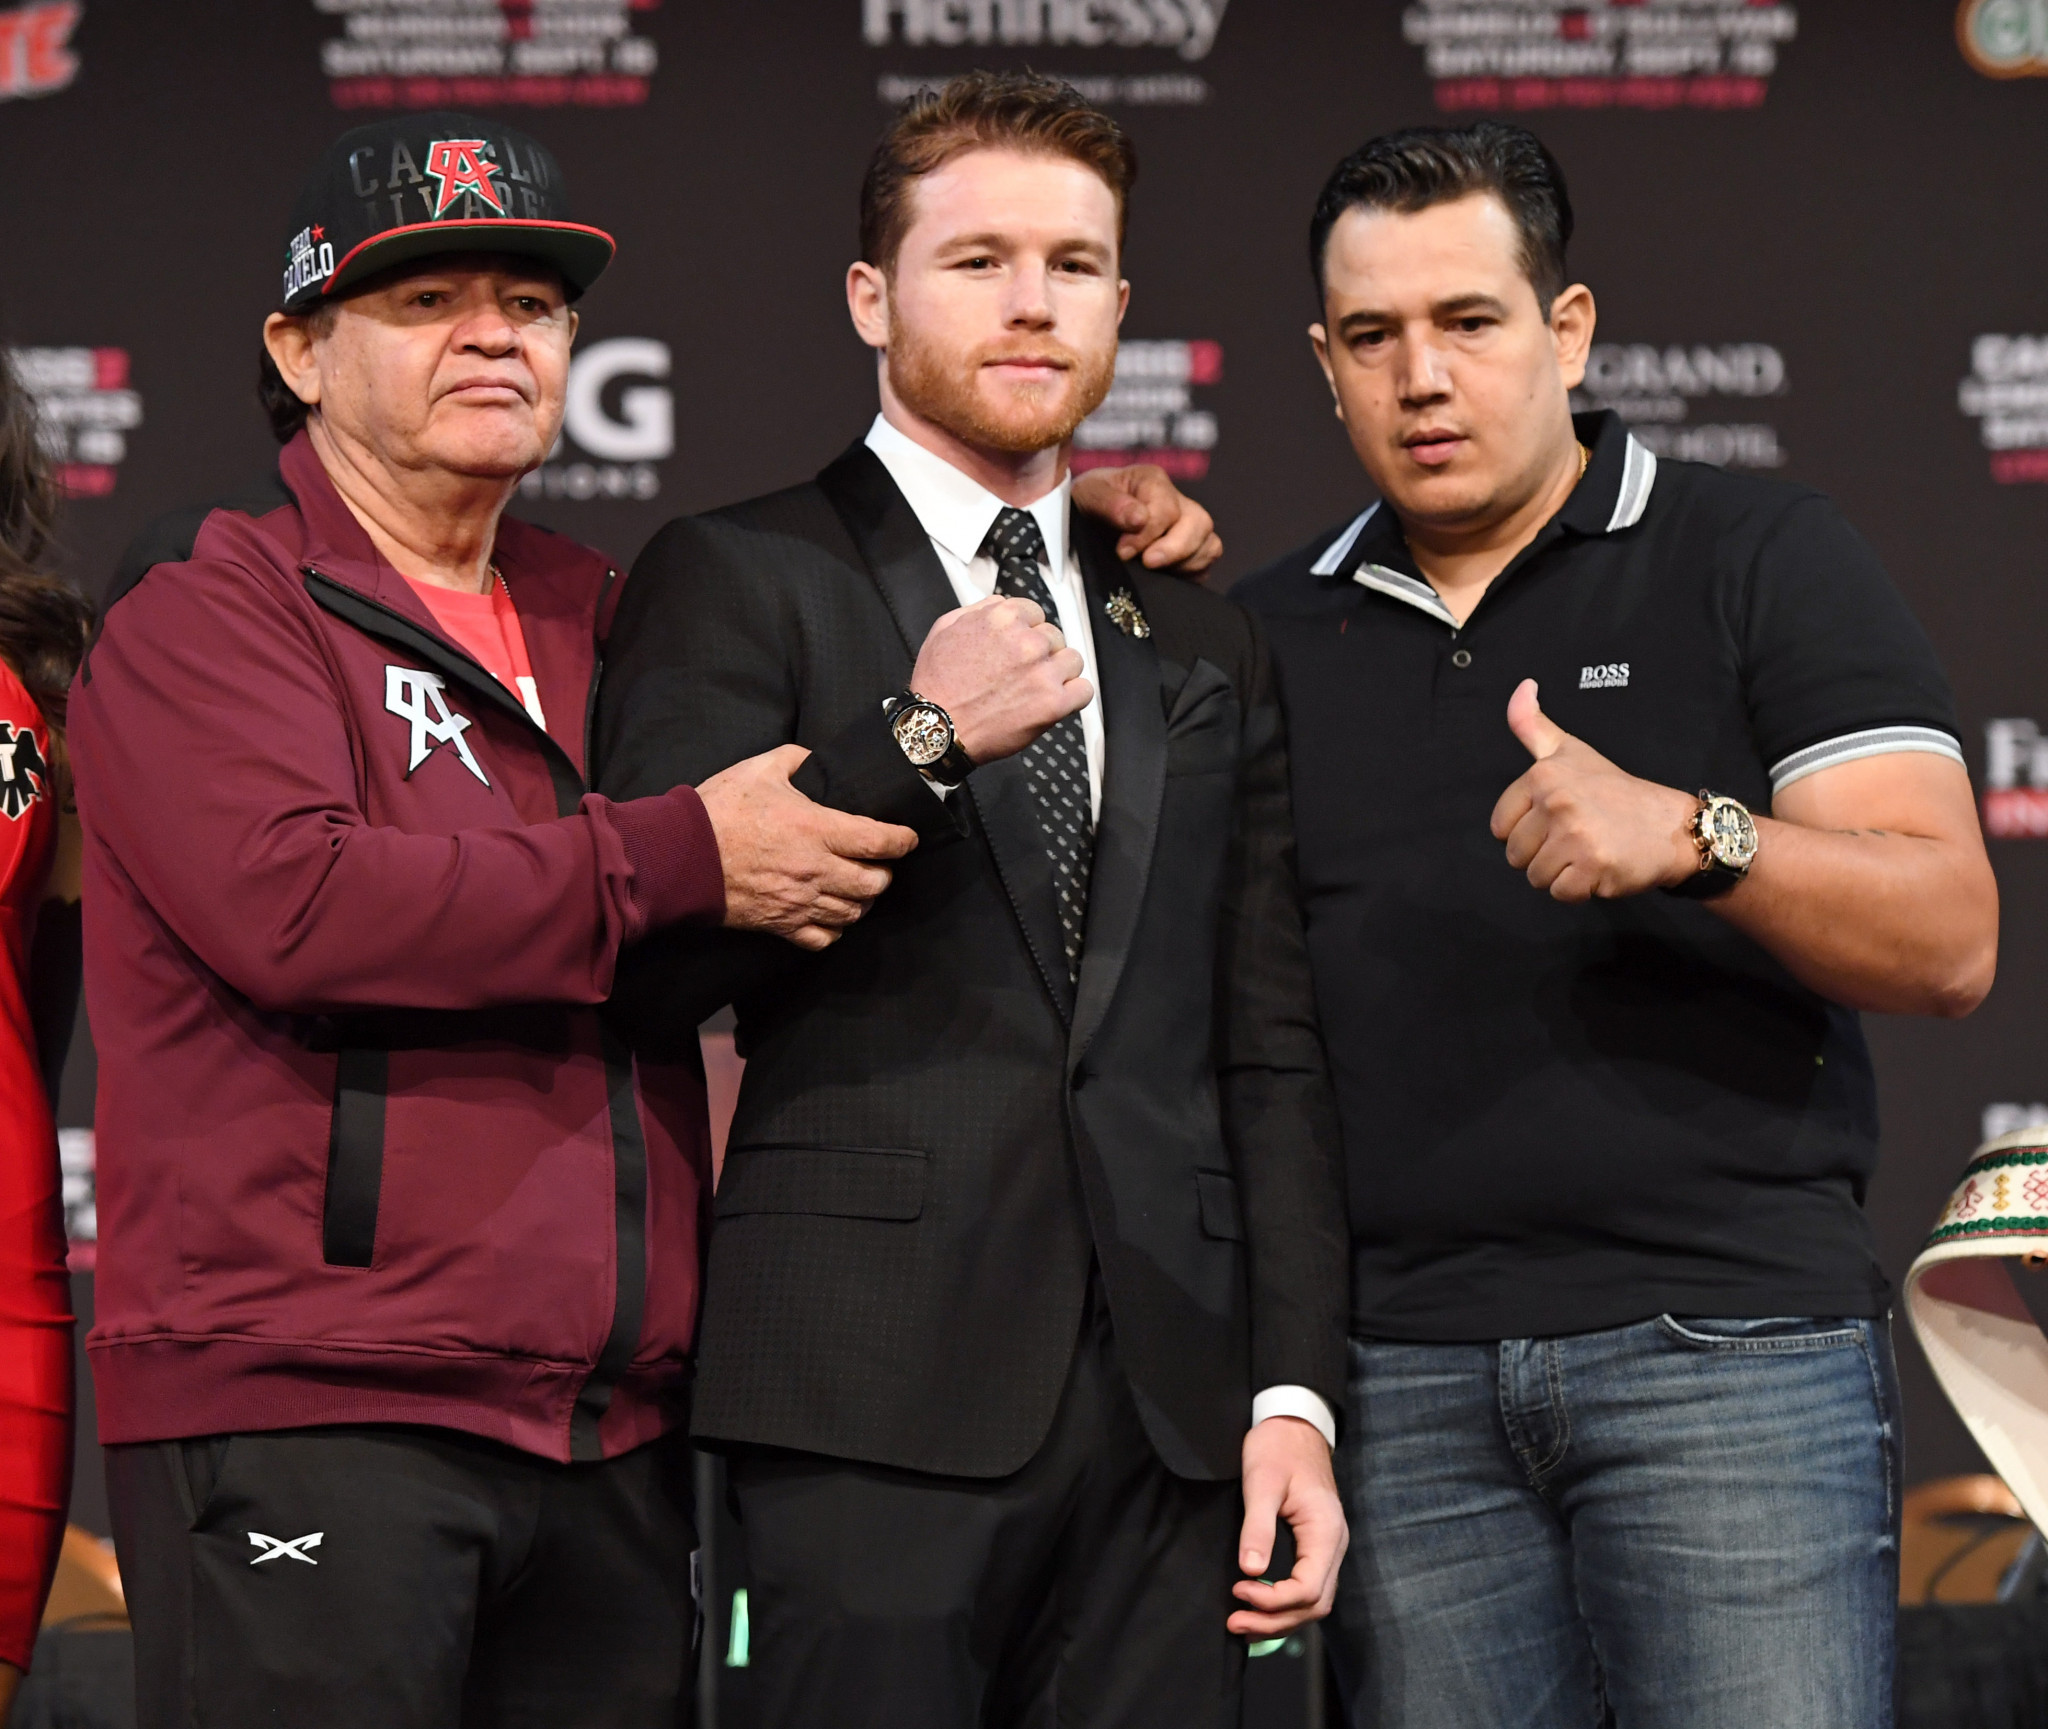 Saul Alvarez has insisted his positive drugs test was as a result of contaminated meat ©Getty Images